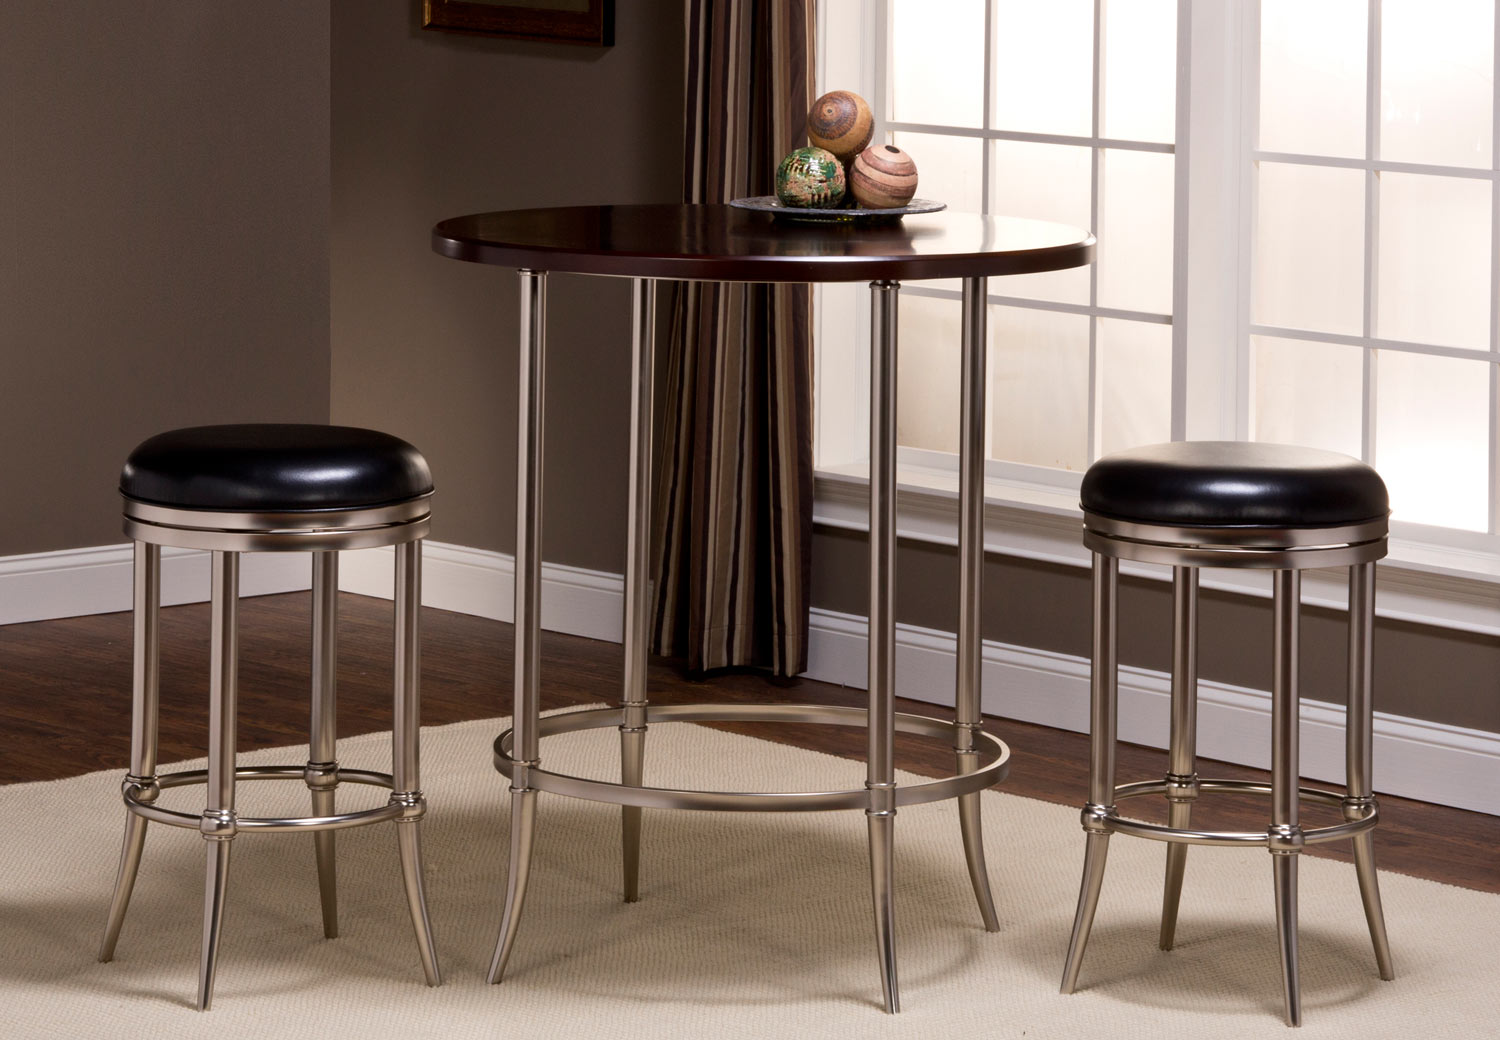 Hillsdale Maddox Bar Height Bistro Dining Set - Espresso/Dull Nickel with Cadman Backless Bar Stool